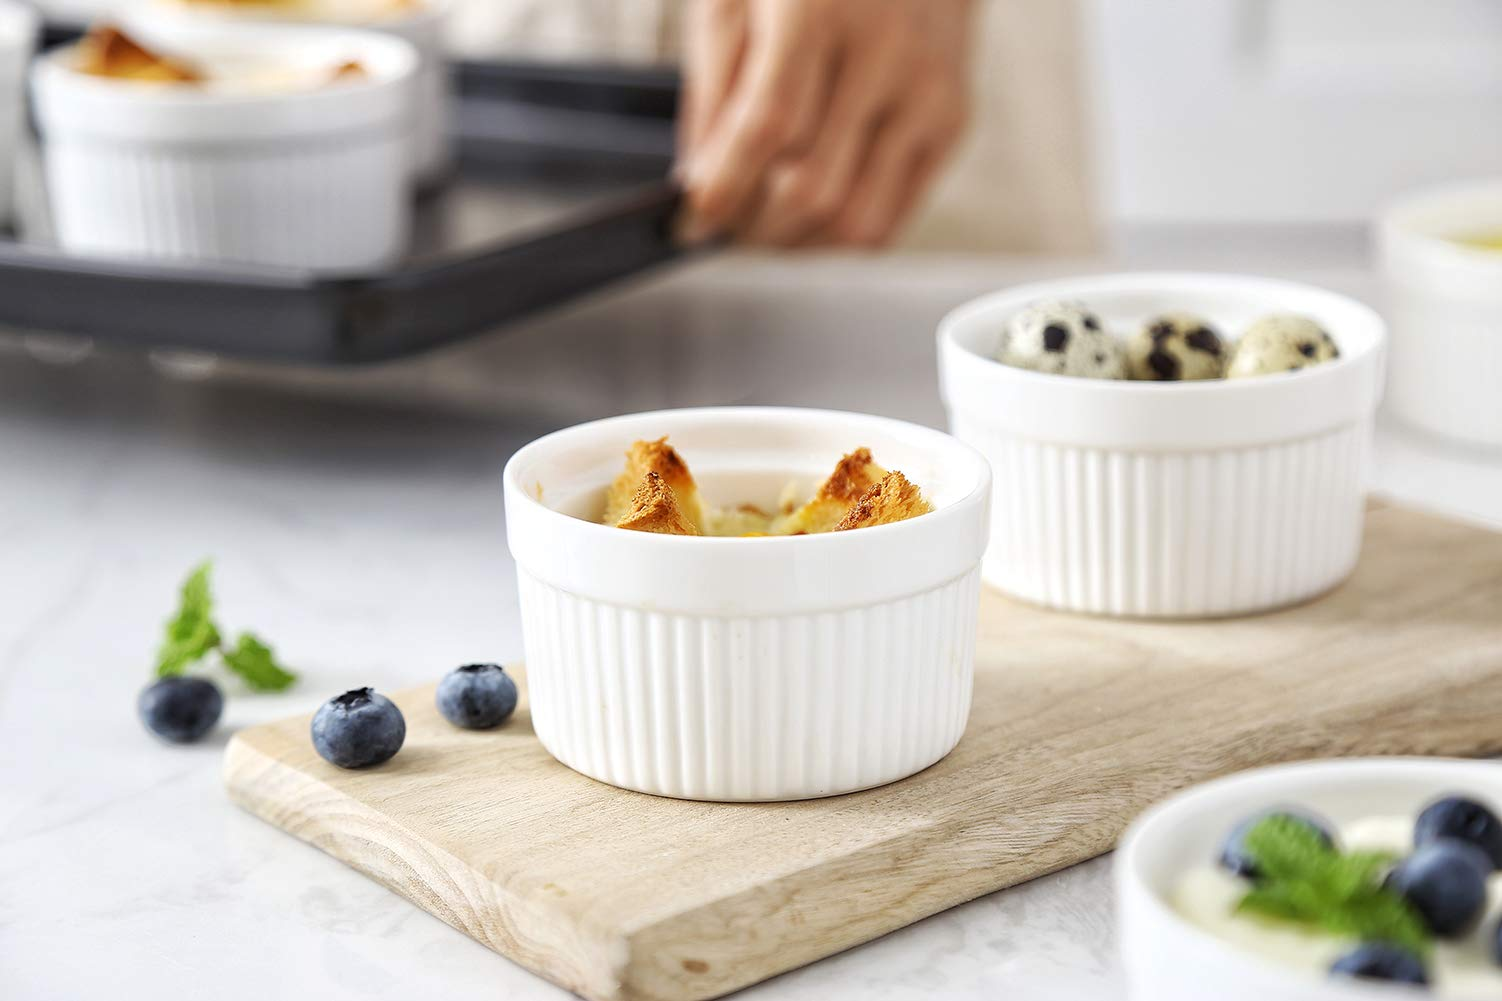 6 oz Ramekin Set of 8 Serving Bowl for Souffle Creme Brulee and Dipping Sauces Porcelain White by LAUCHUH (Image #3)